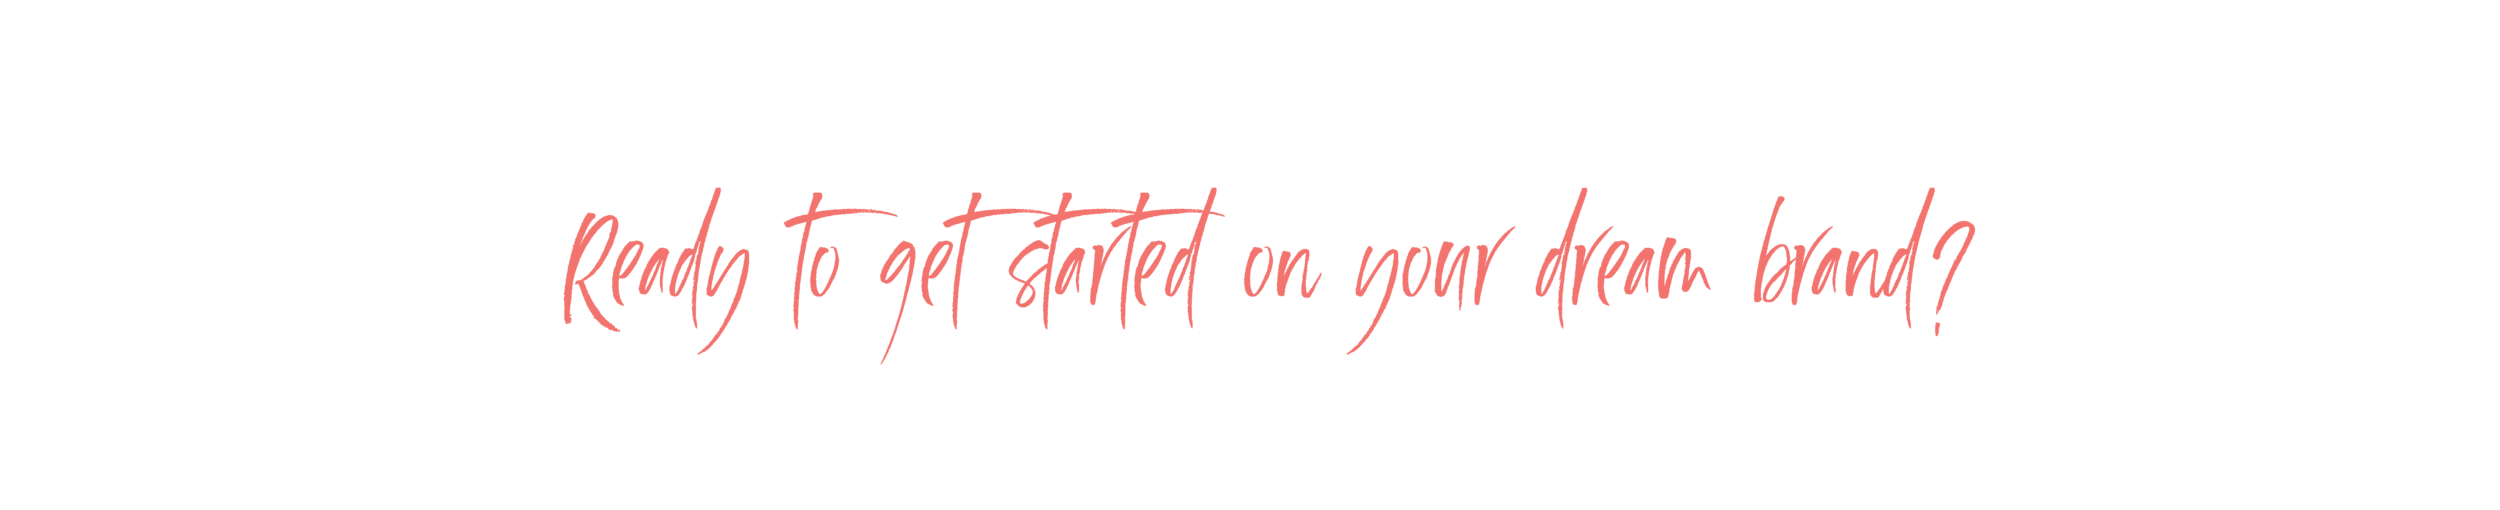 Brand of Your Dreams_Ready to get started.png